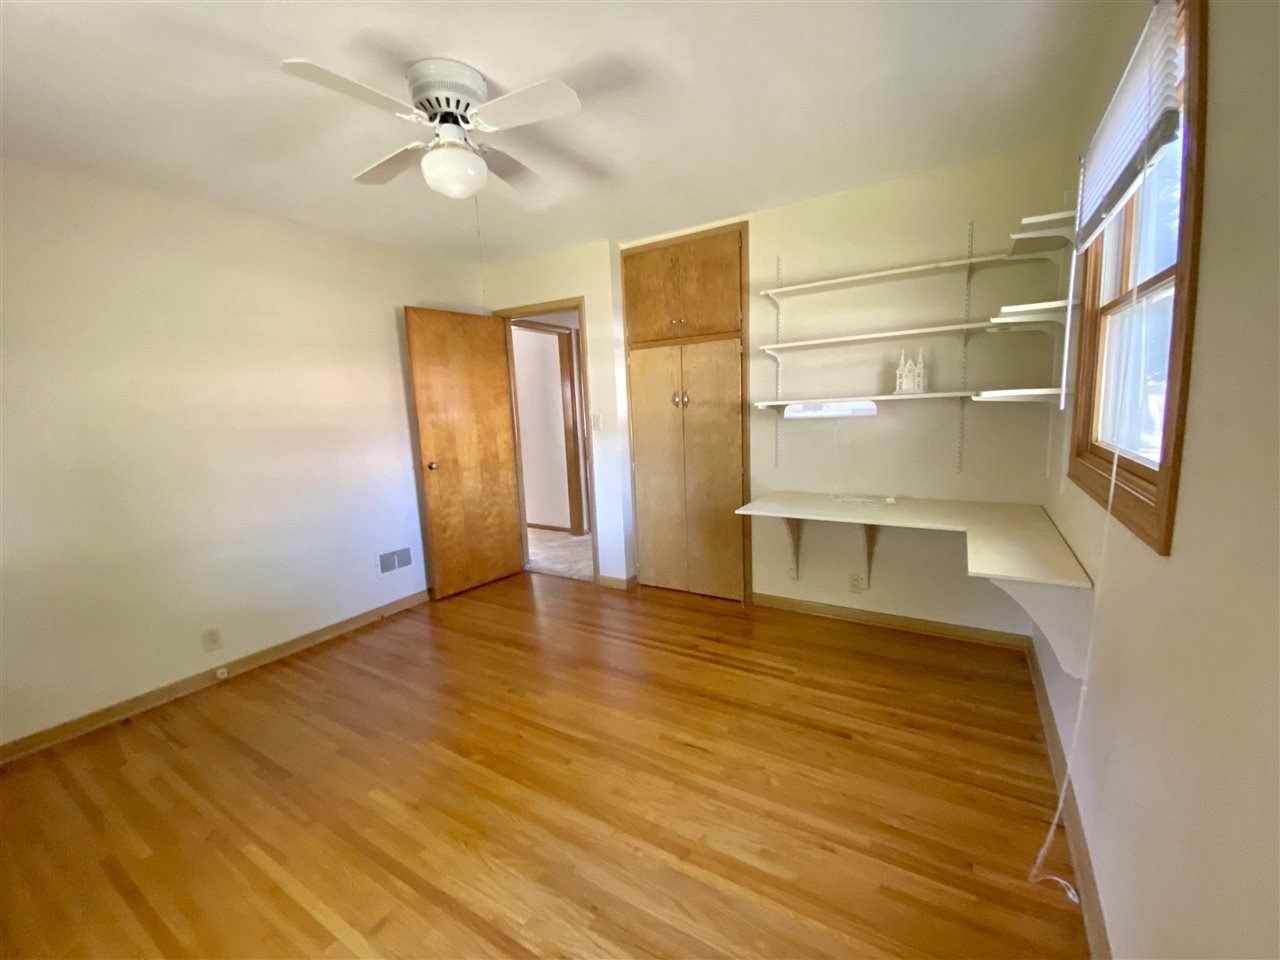 MLS# 211050 for Sale